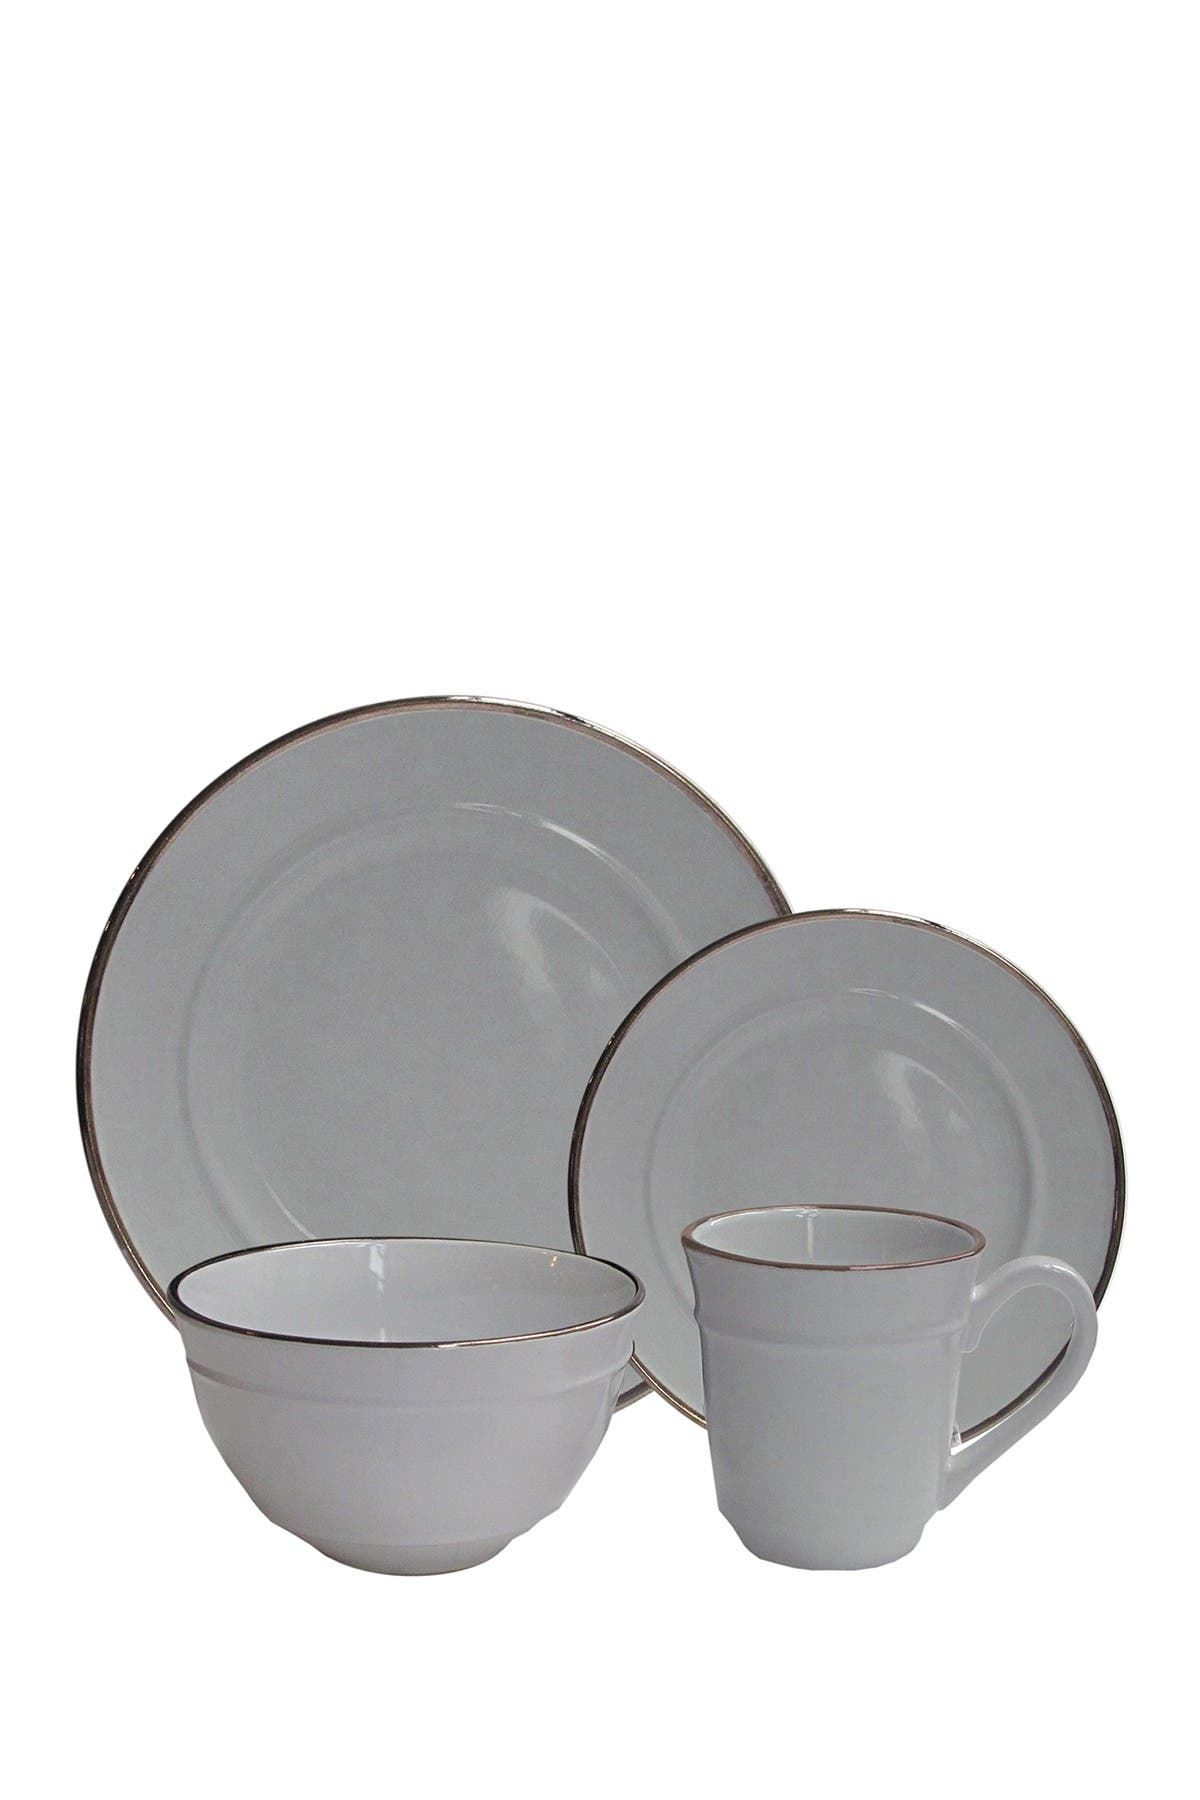 Image of Jay Import Lucienne Gray Stoneware 16-Piece Dinnerware Set